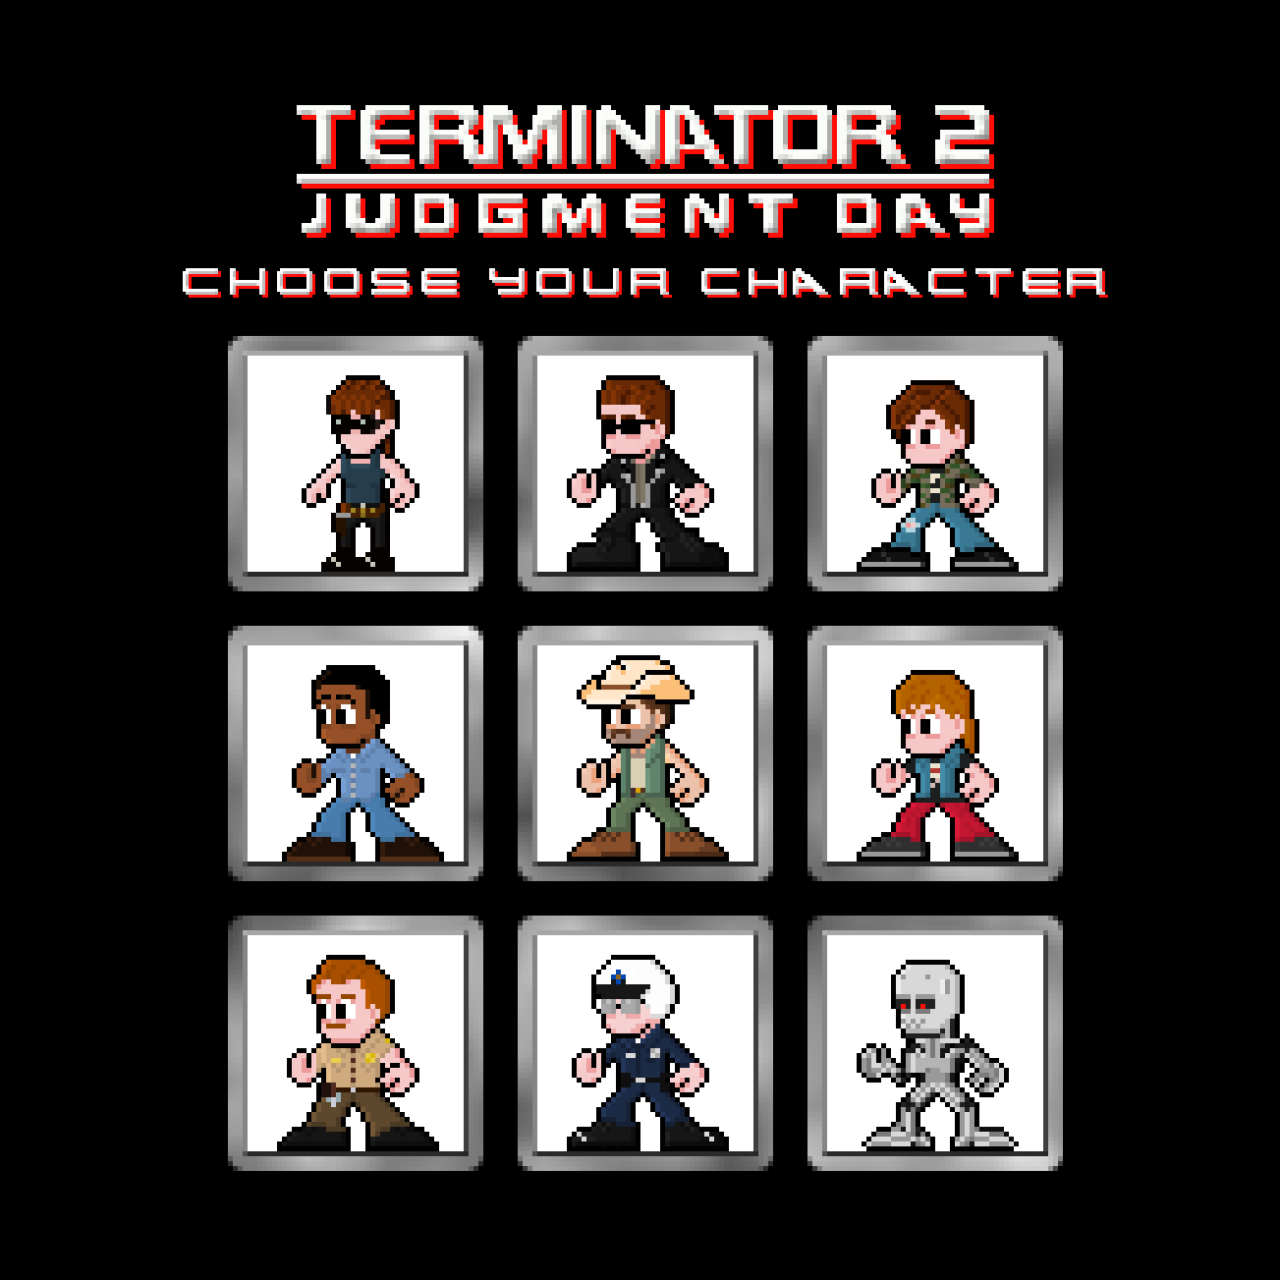 T shirt poster design - The Complete Terminator 2 Judgment Day Character Collection As Well As T Shirt Poster Designsa